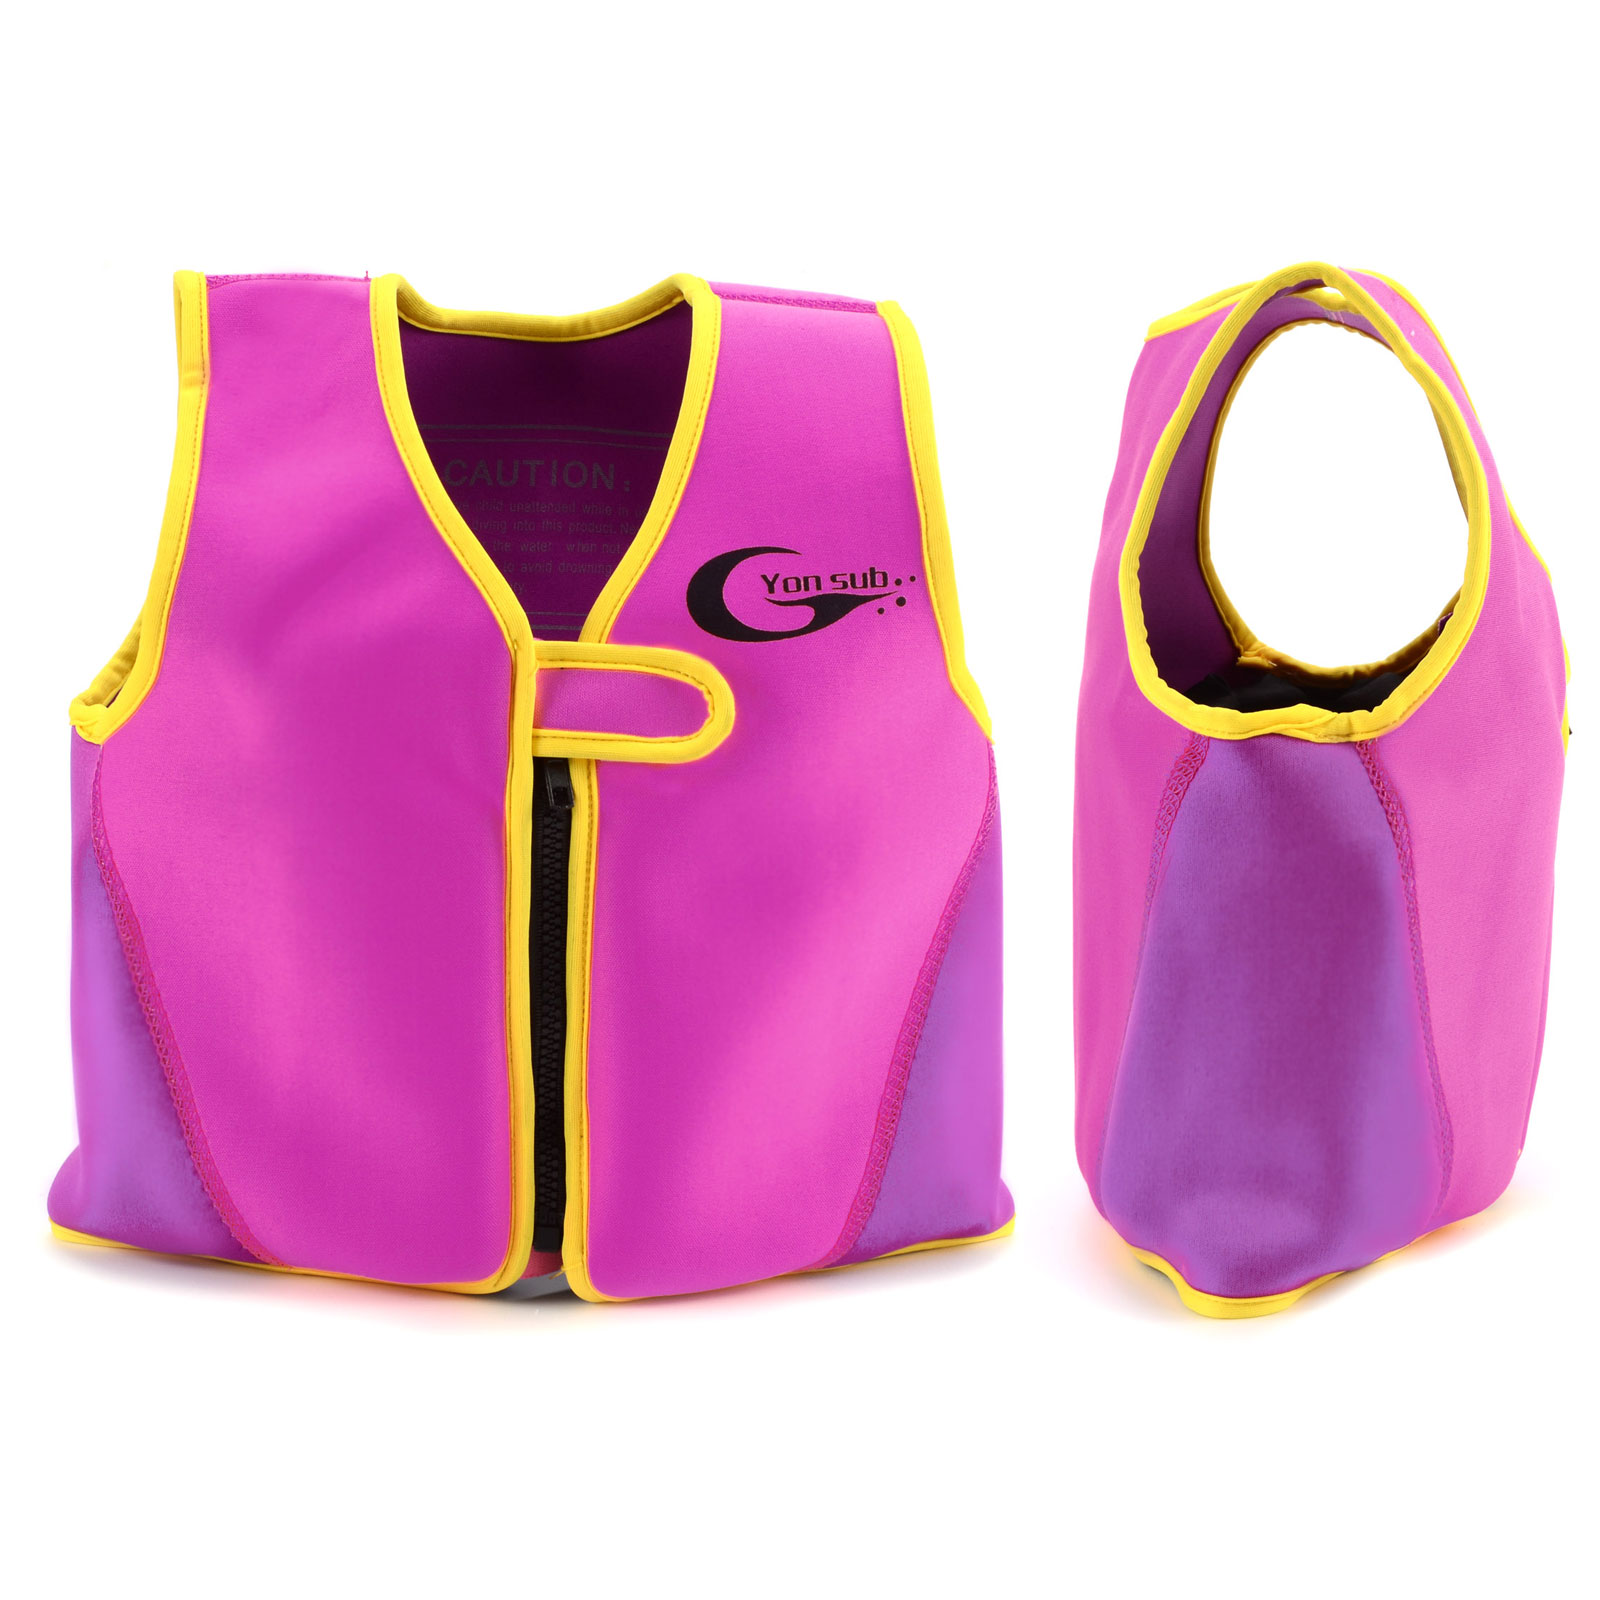 1pc Baby Kids Safety Float Inflatable Swim Vest Life Jacket Swimming Aid Vest Baby Safety Swimming Accessories For Children Luggage & Bags